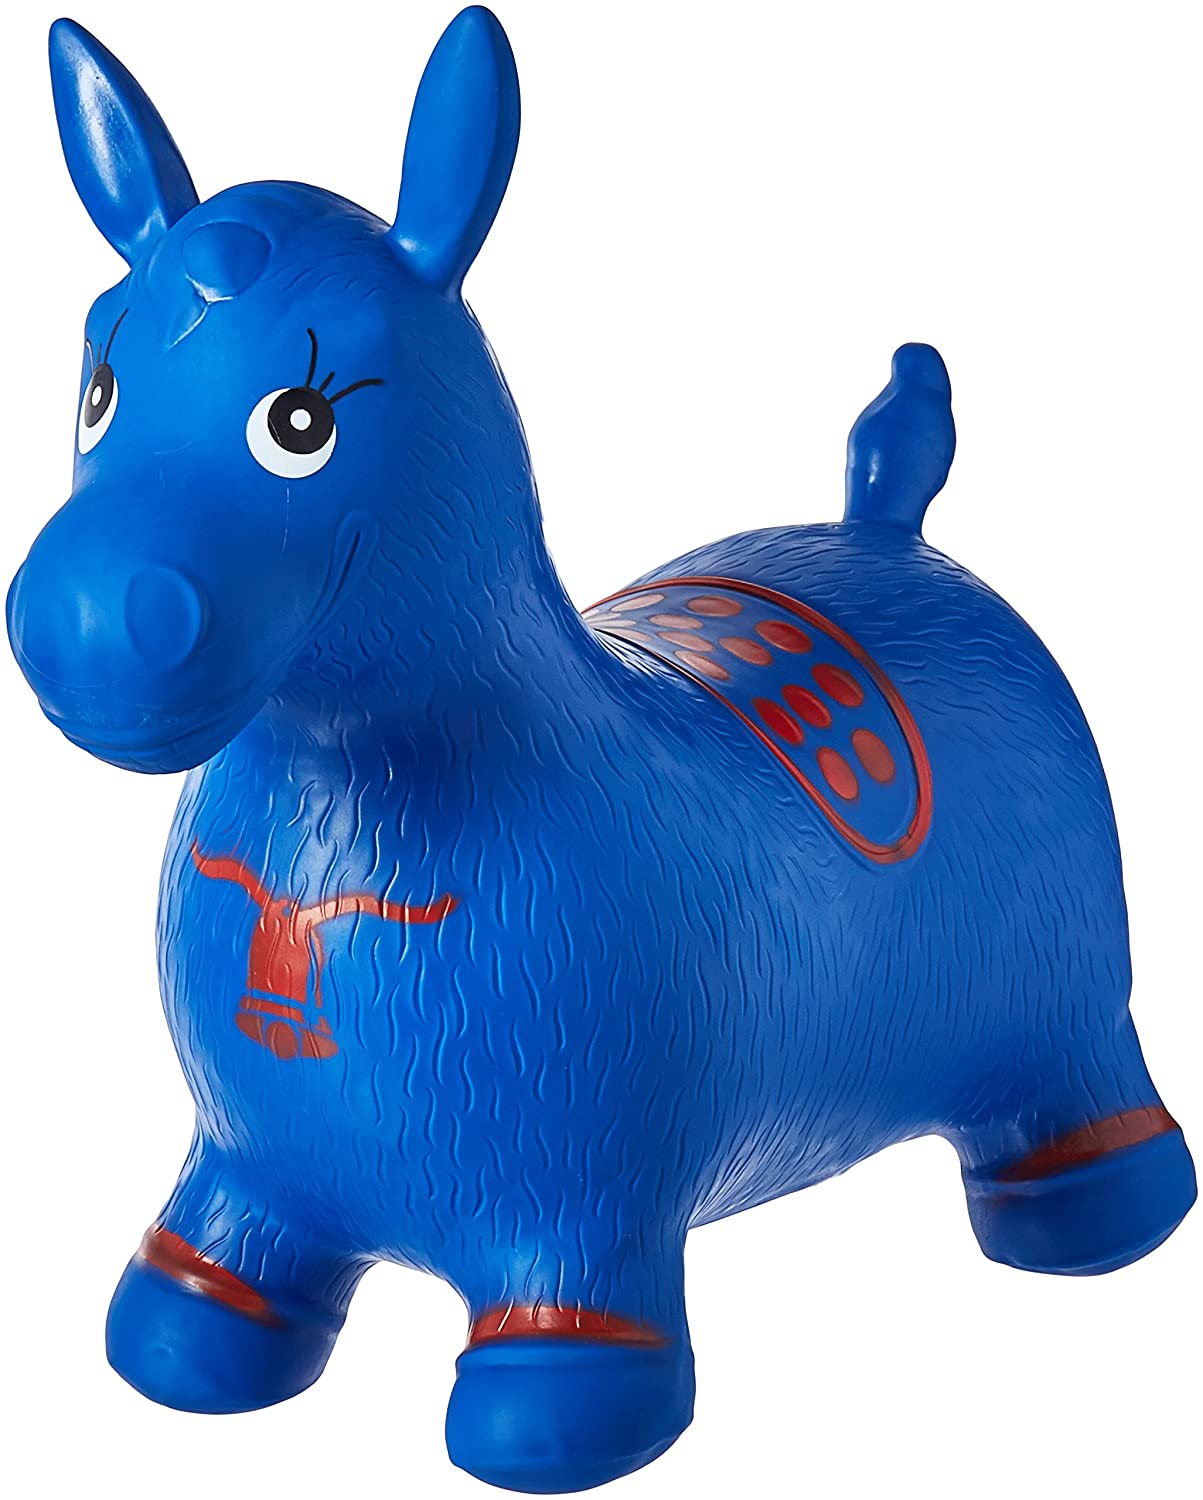 Blue Horse Hopper Pump Included Inflatable Space Hopper Jumping Horse Ride on Bouncy Animal